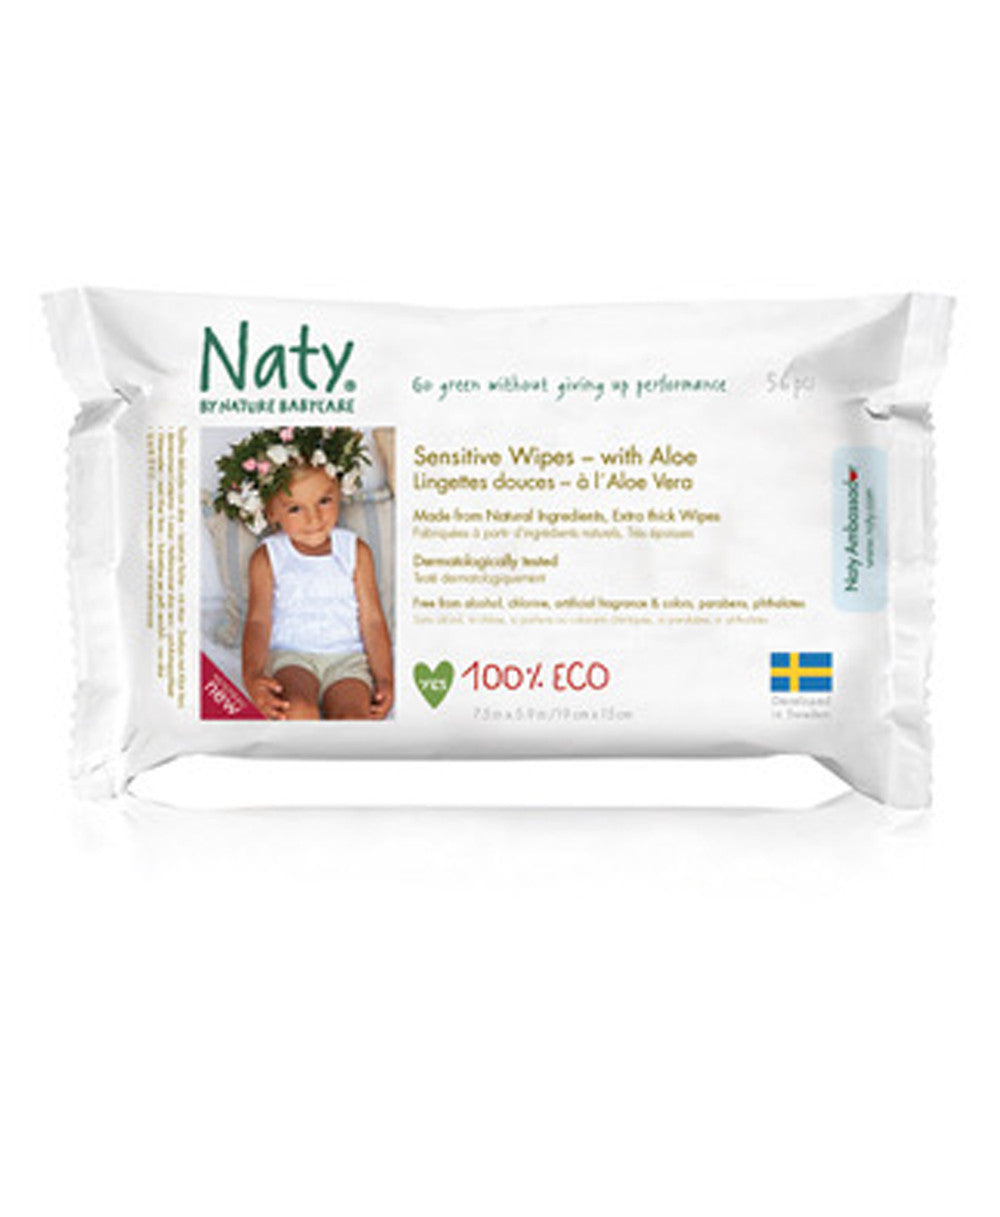 Naty Aloe Sensitive Wipes- Unscented